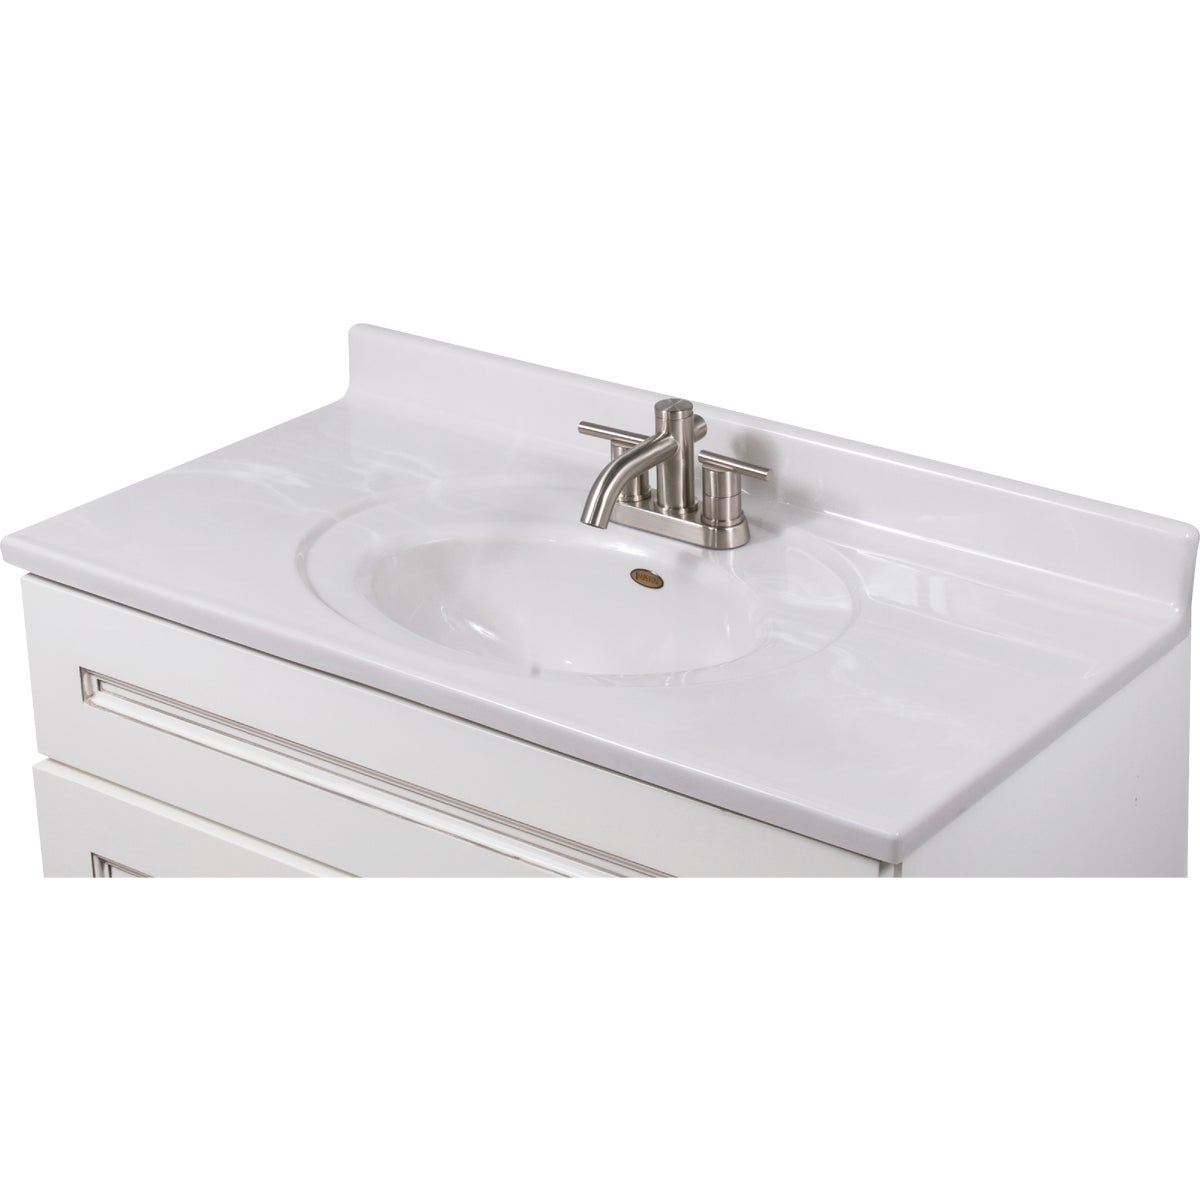 37X19 WHT/WHT VANITY TOP - VS3719W by Imperial Marble Corp